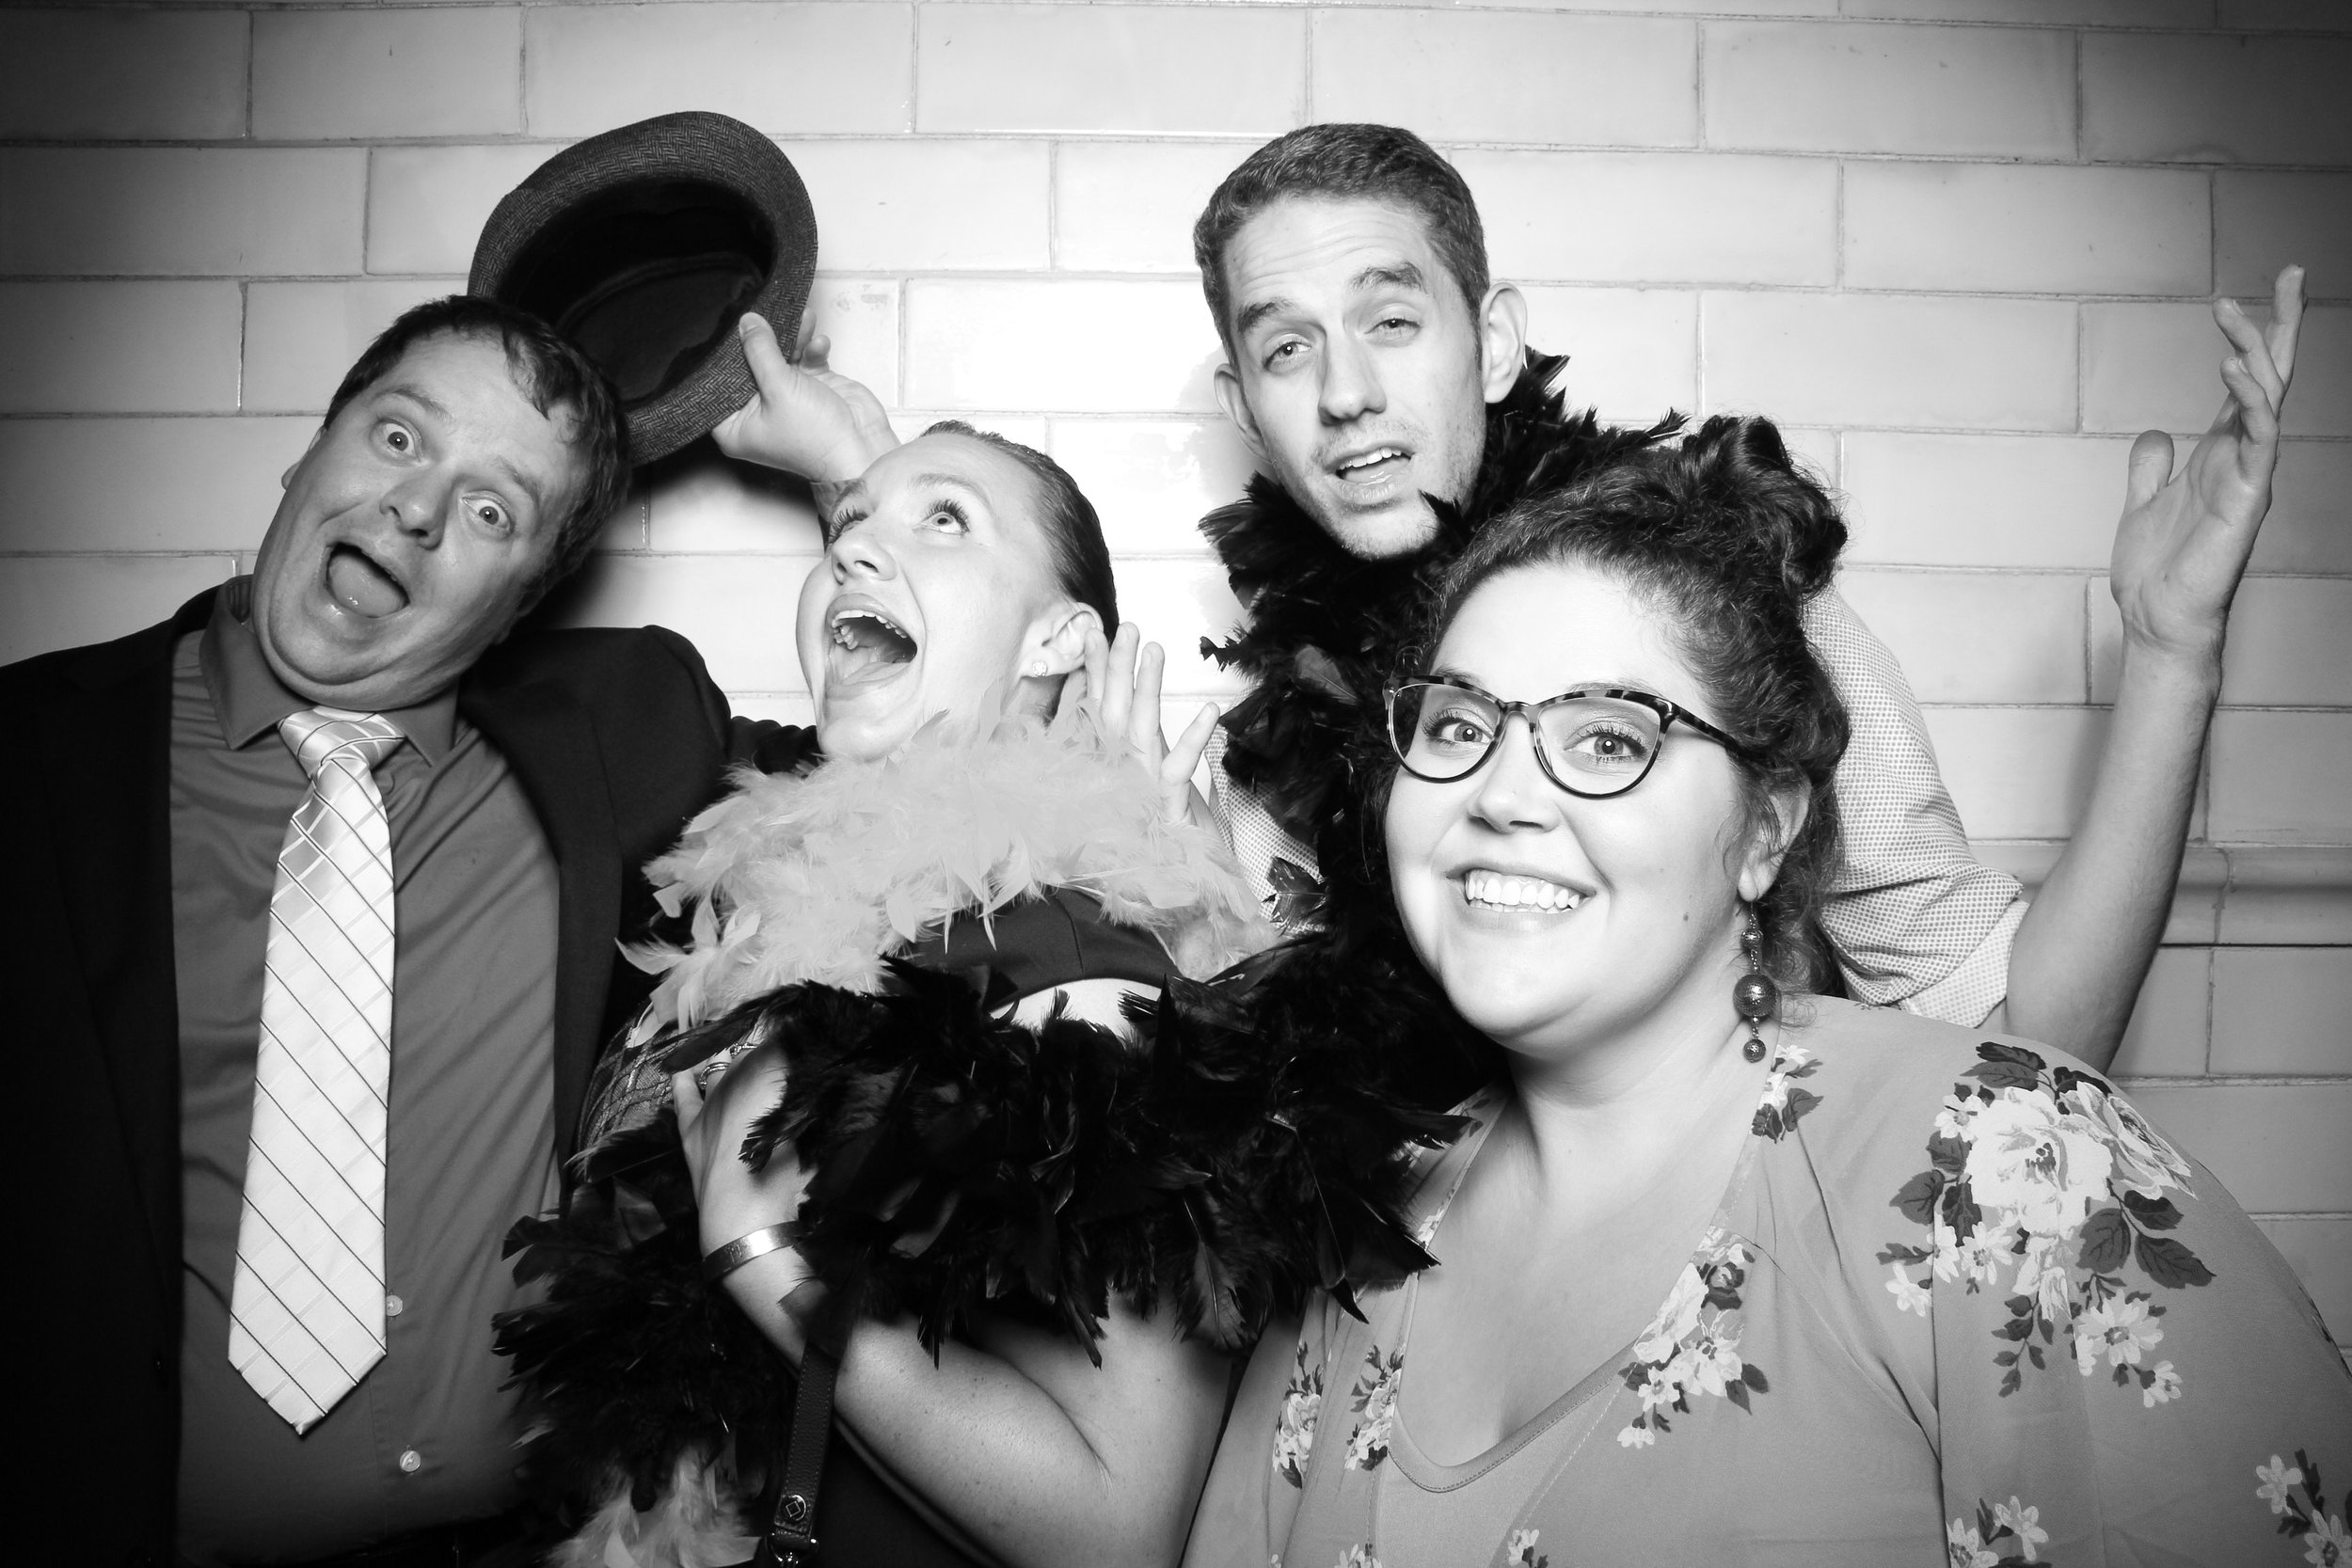 Firehouse_Chicago_Edgewater_Wedding_Reception_Photo_Booth_04.jpg